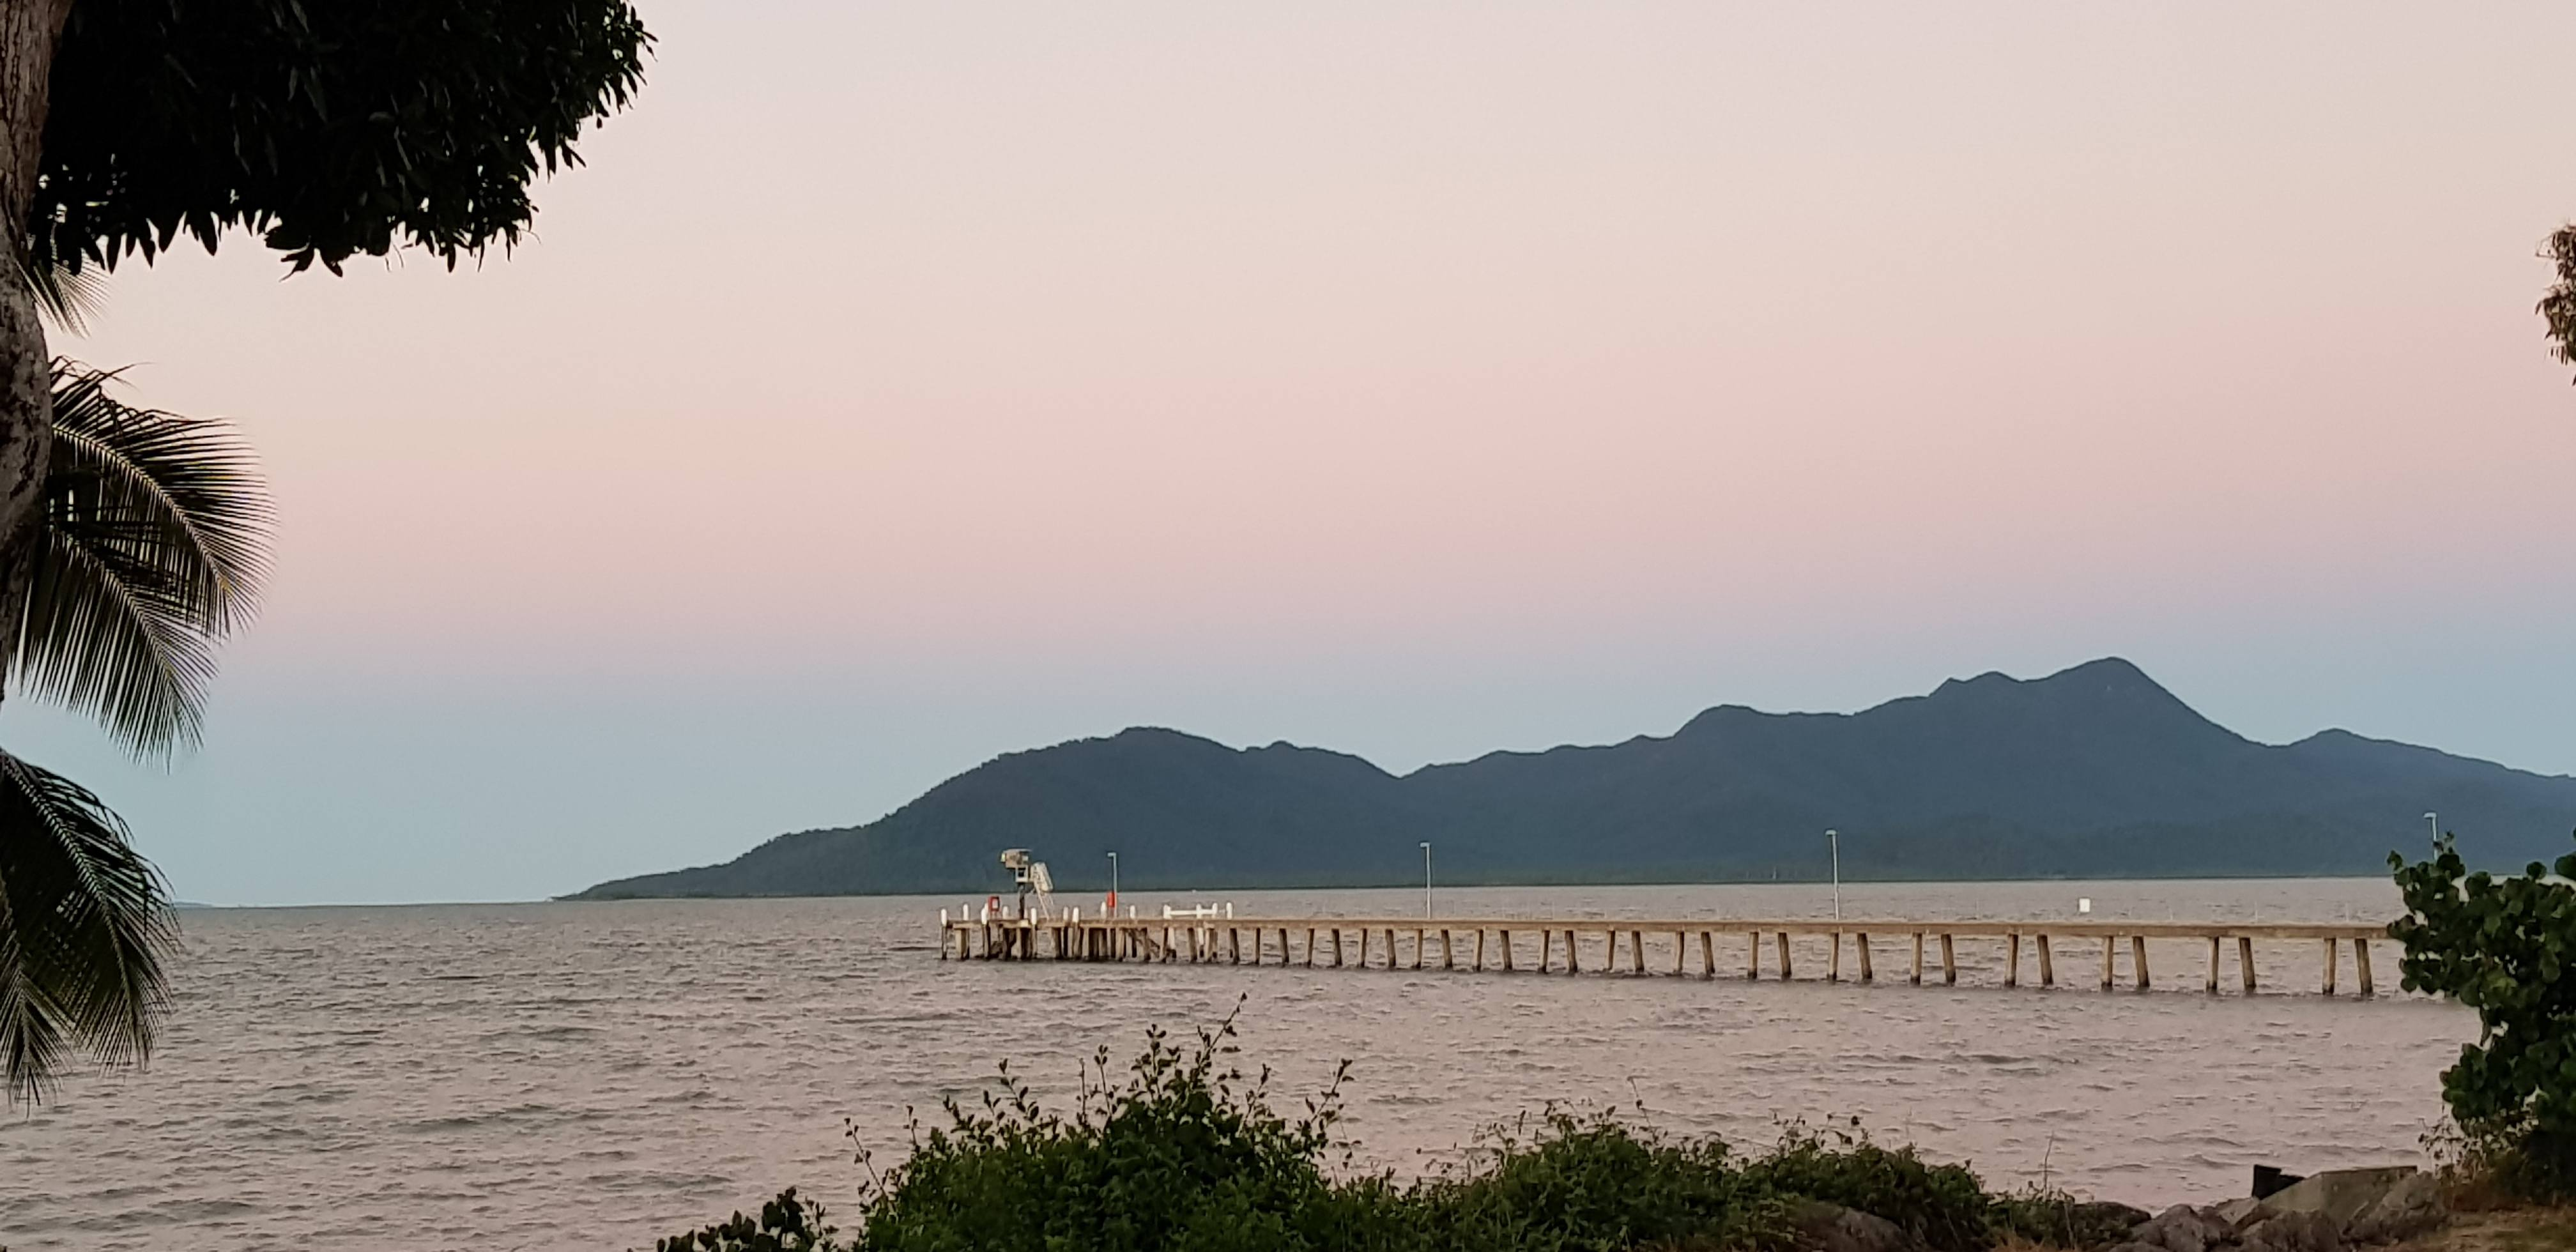 Cardwell Jetty at sunset with Hichinbrook Island in the background